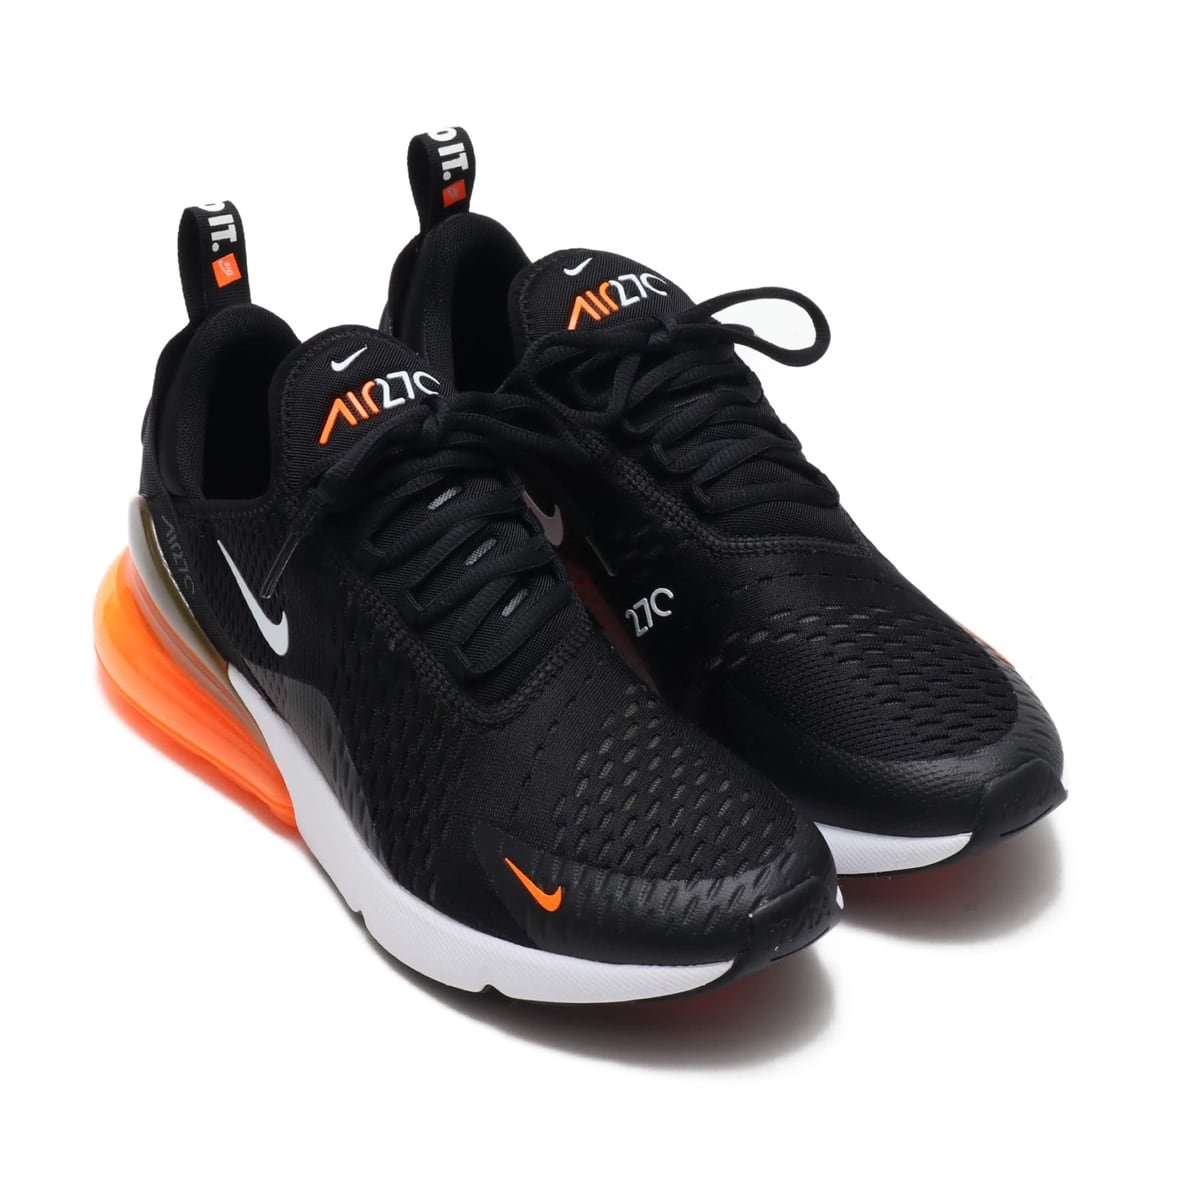 Nike Air Max 270 Just Do It Black white total orange AH8050 014